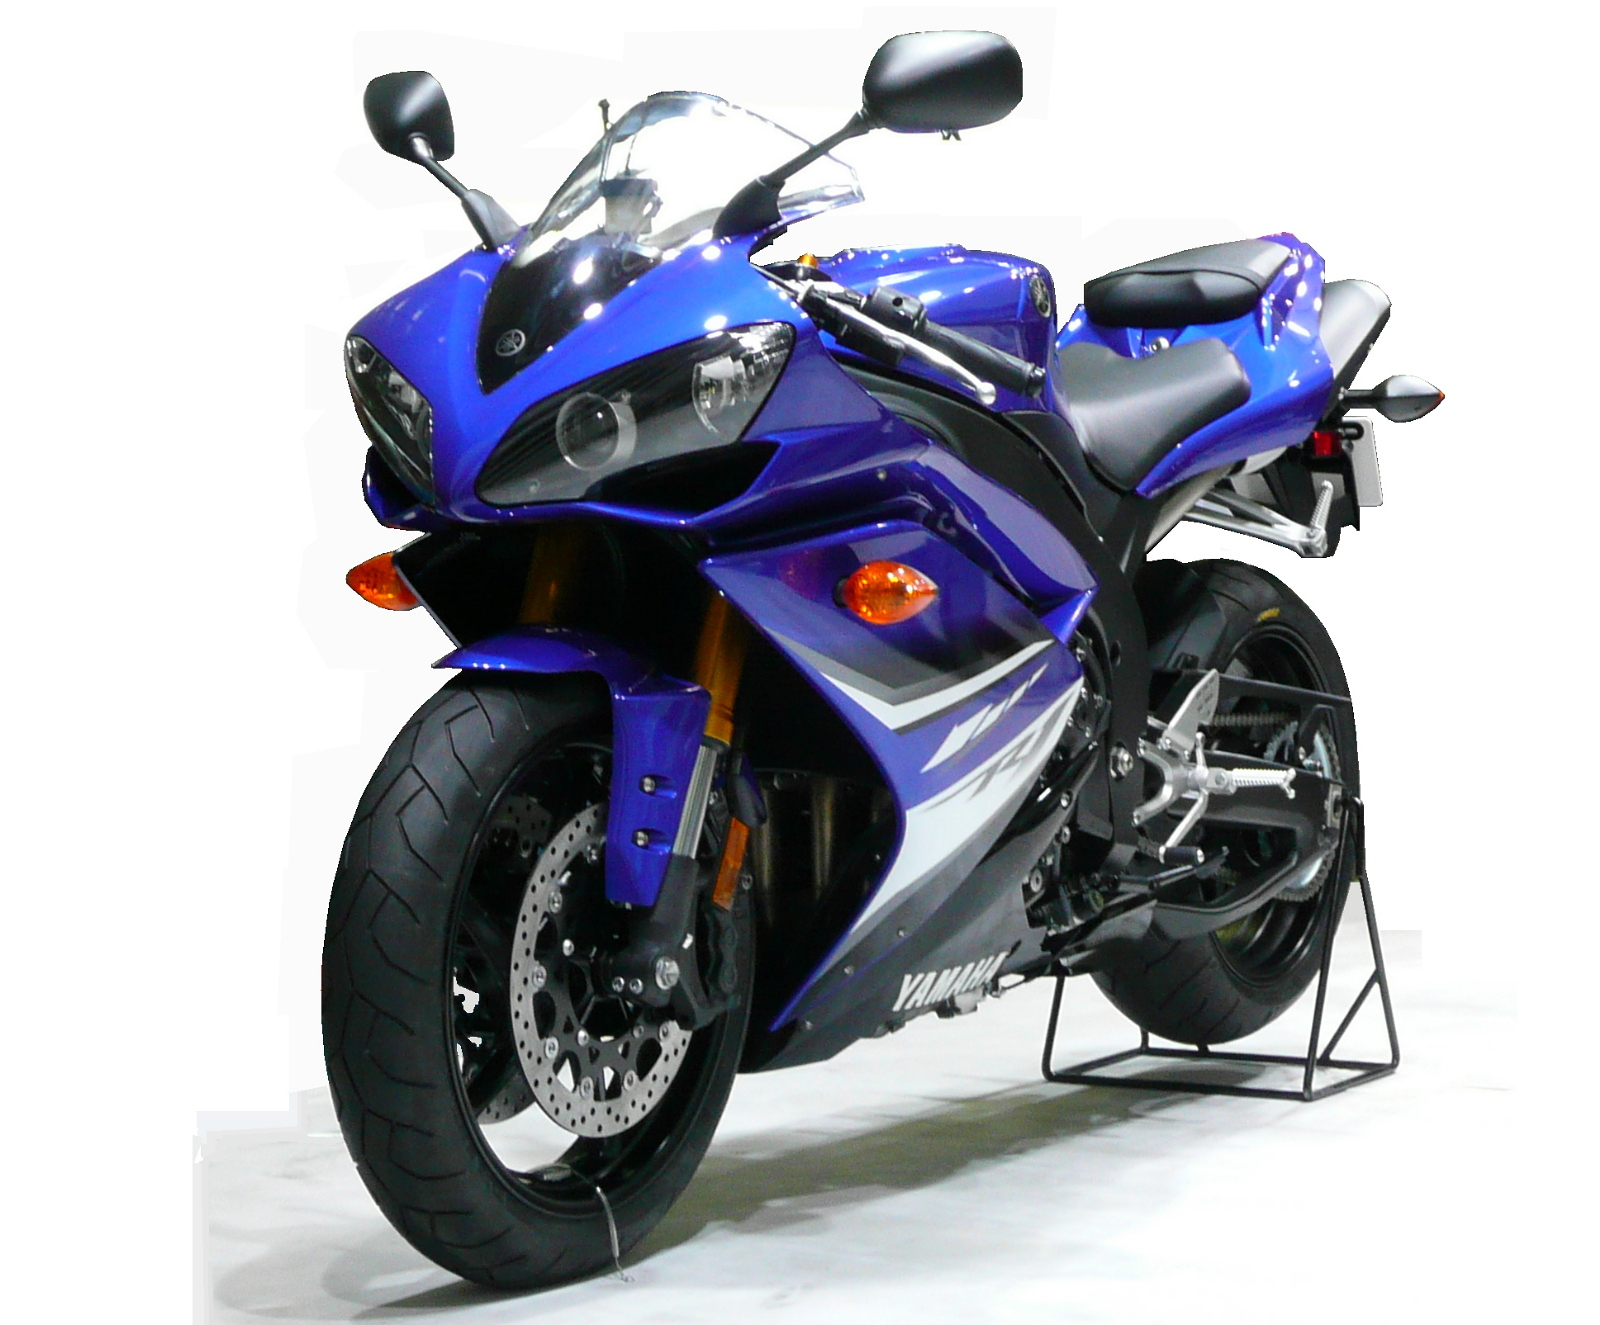 Gallery images and information: yamaha 2014 r1